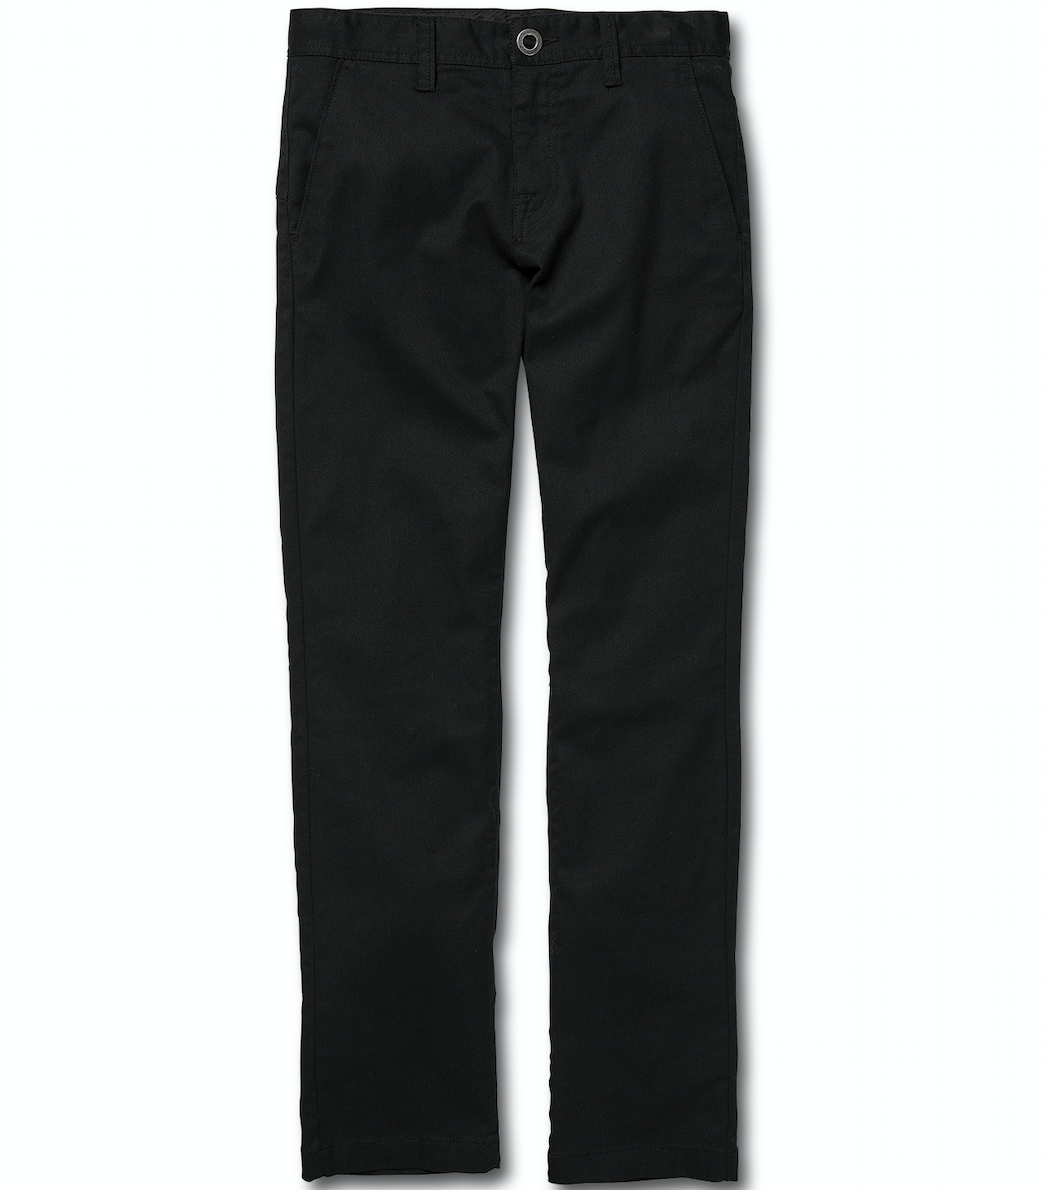 Kids Frickin Slim Chino Black